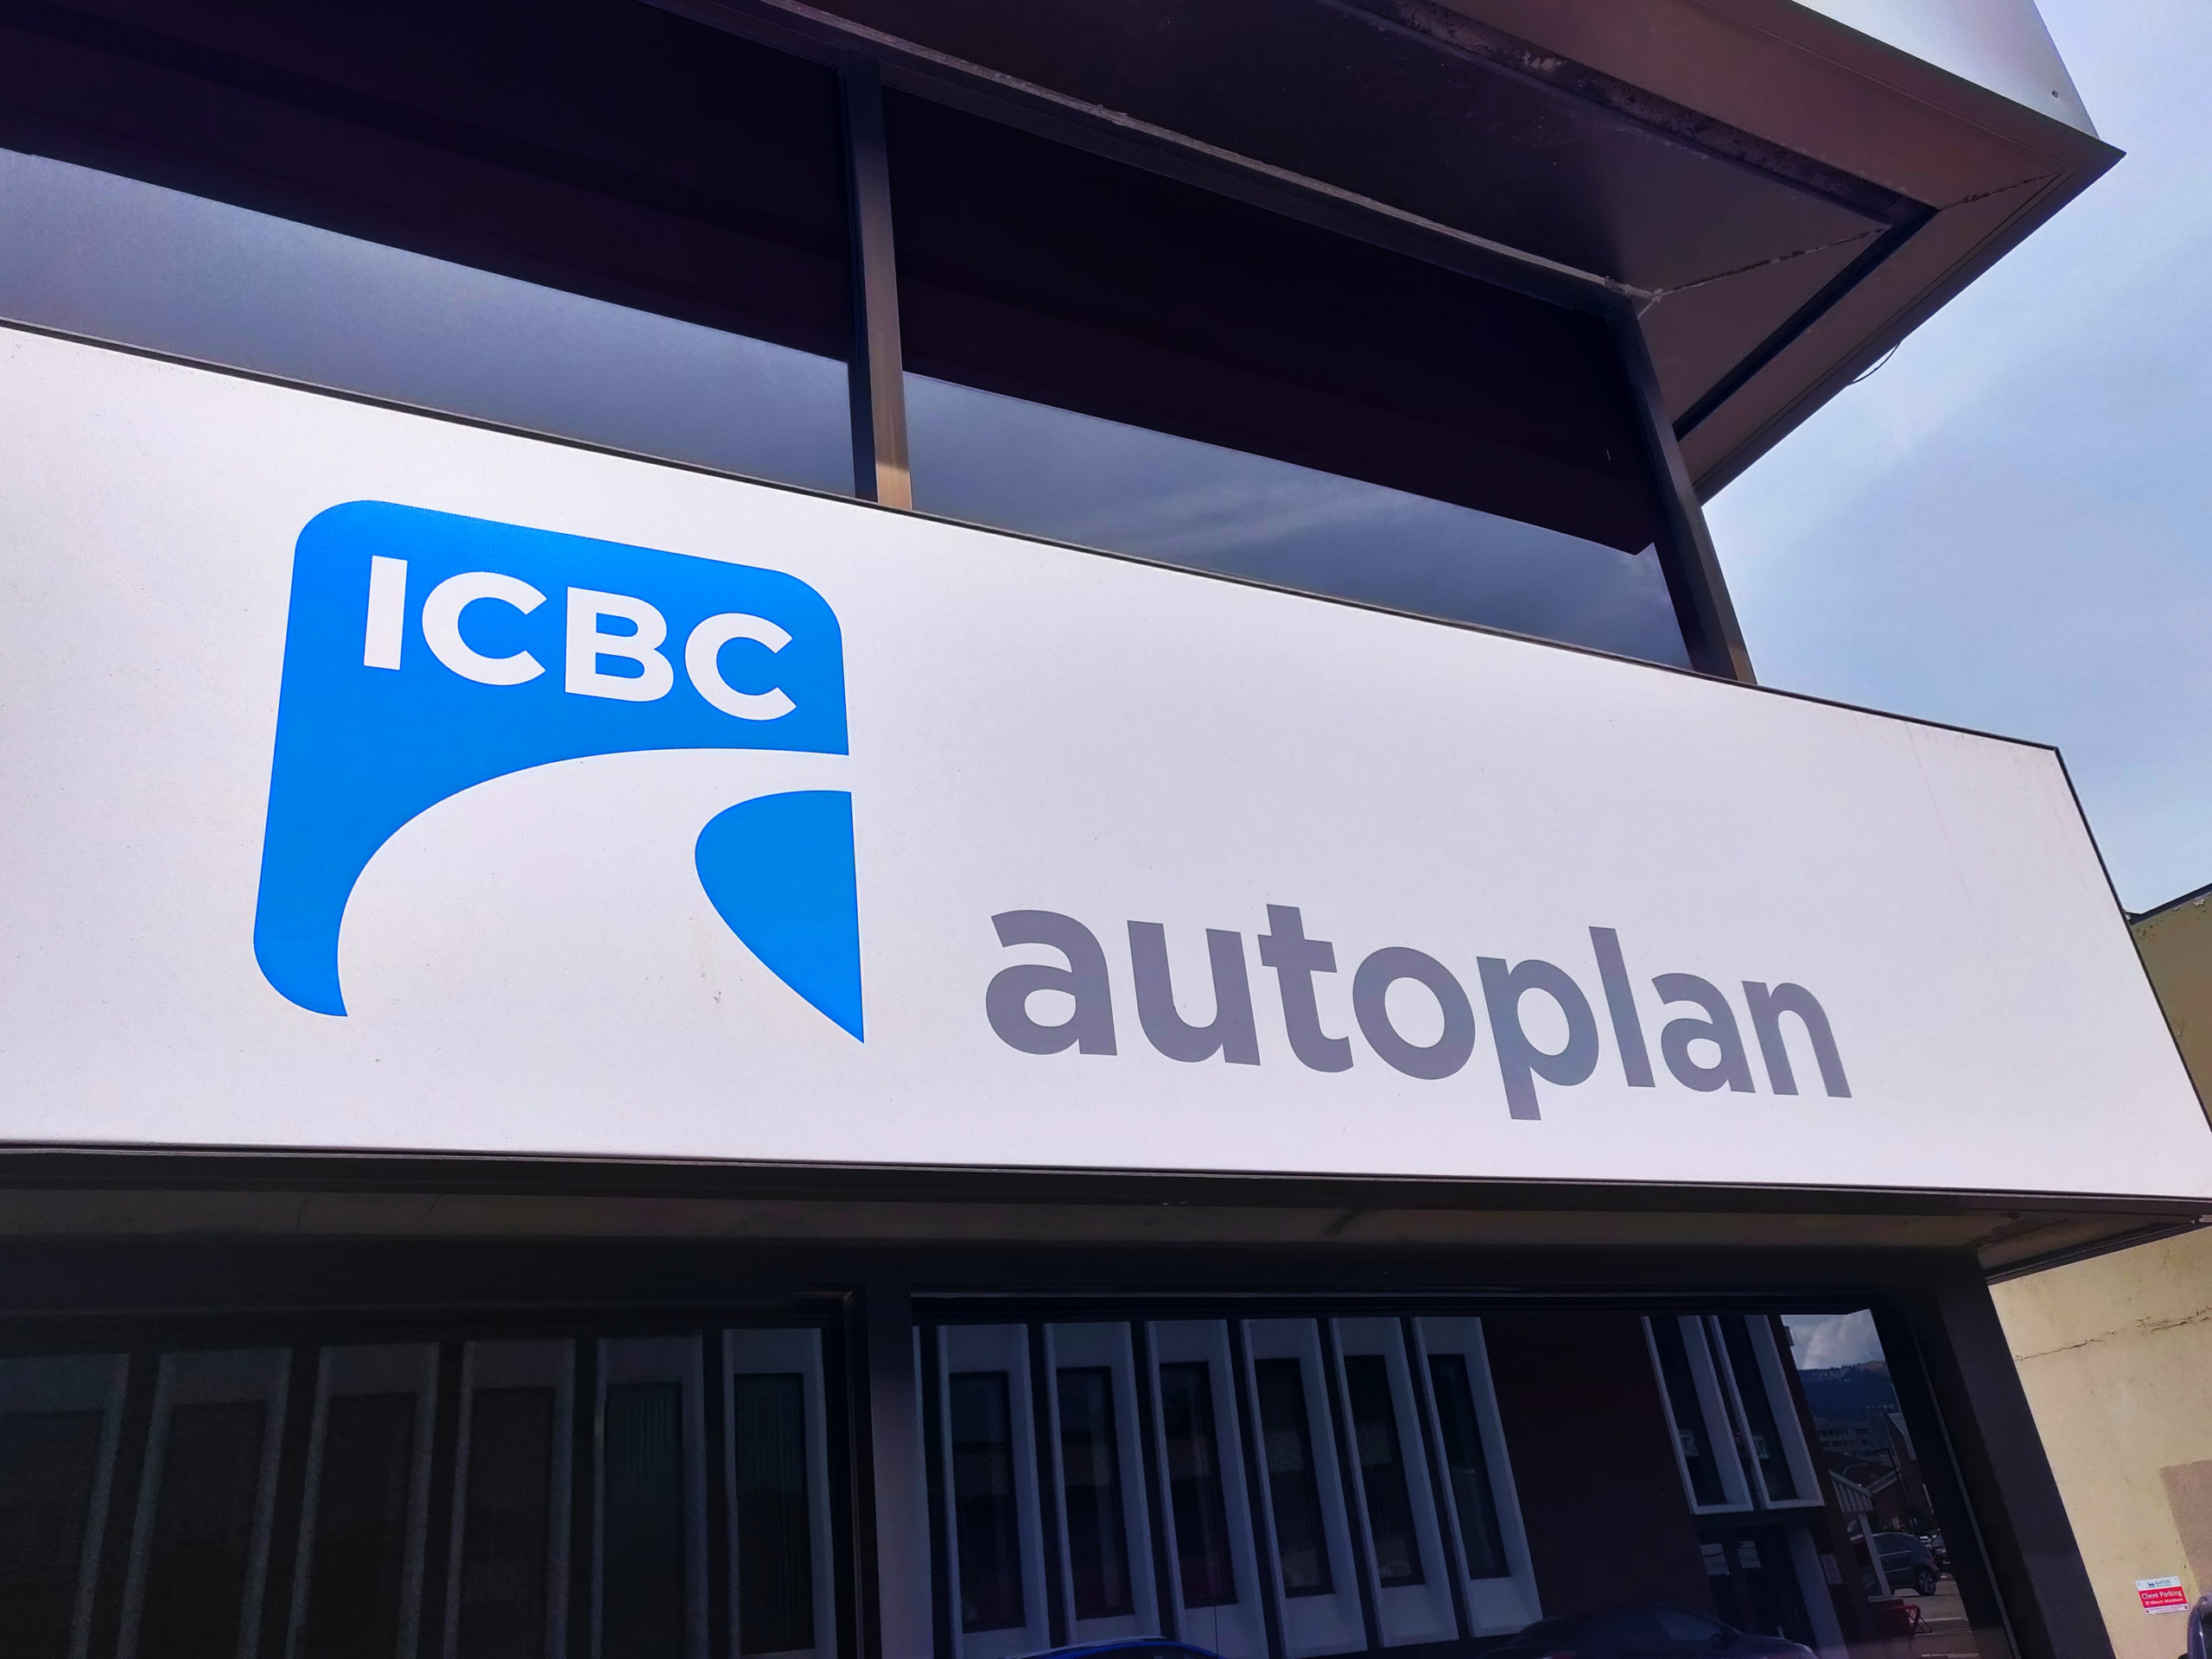 ICBC improved its Online Estimator tool to show ICBC savings ahead